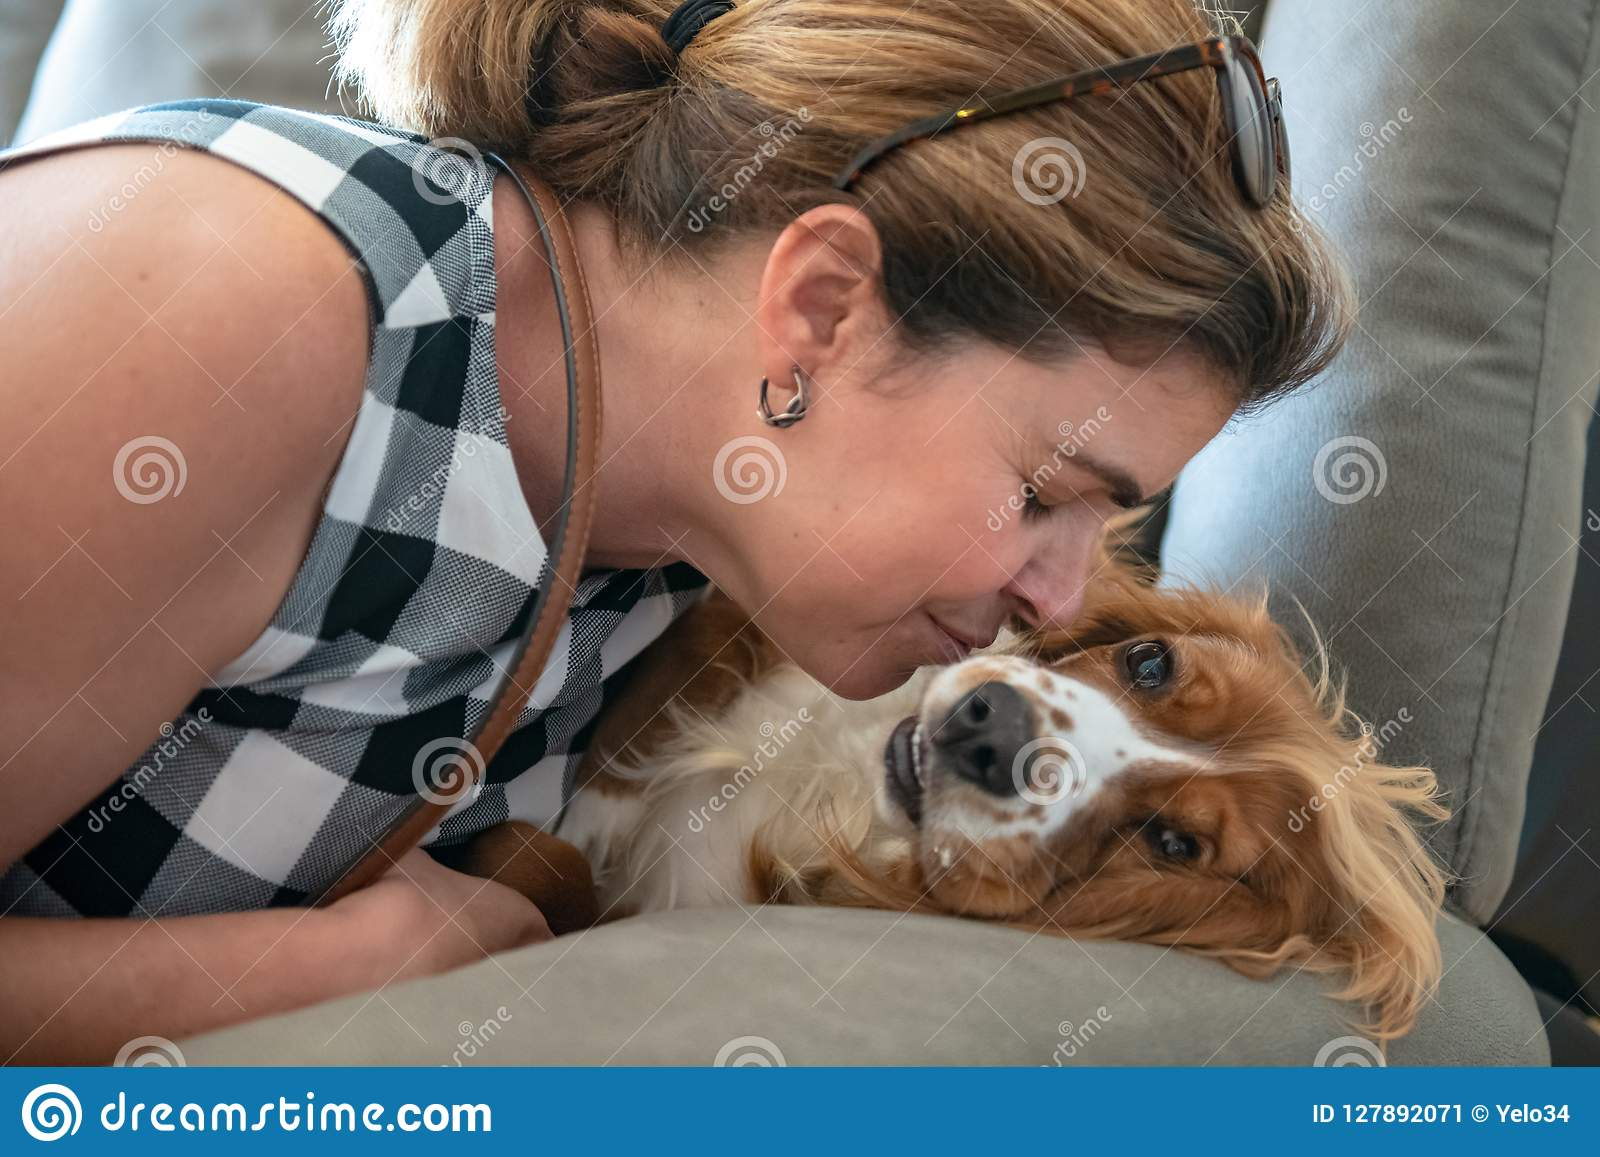 Real woman people playing with cocker spaniel dog